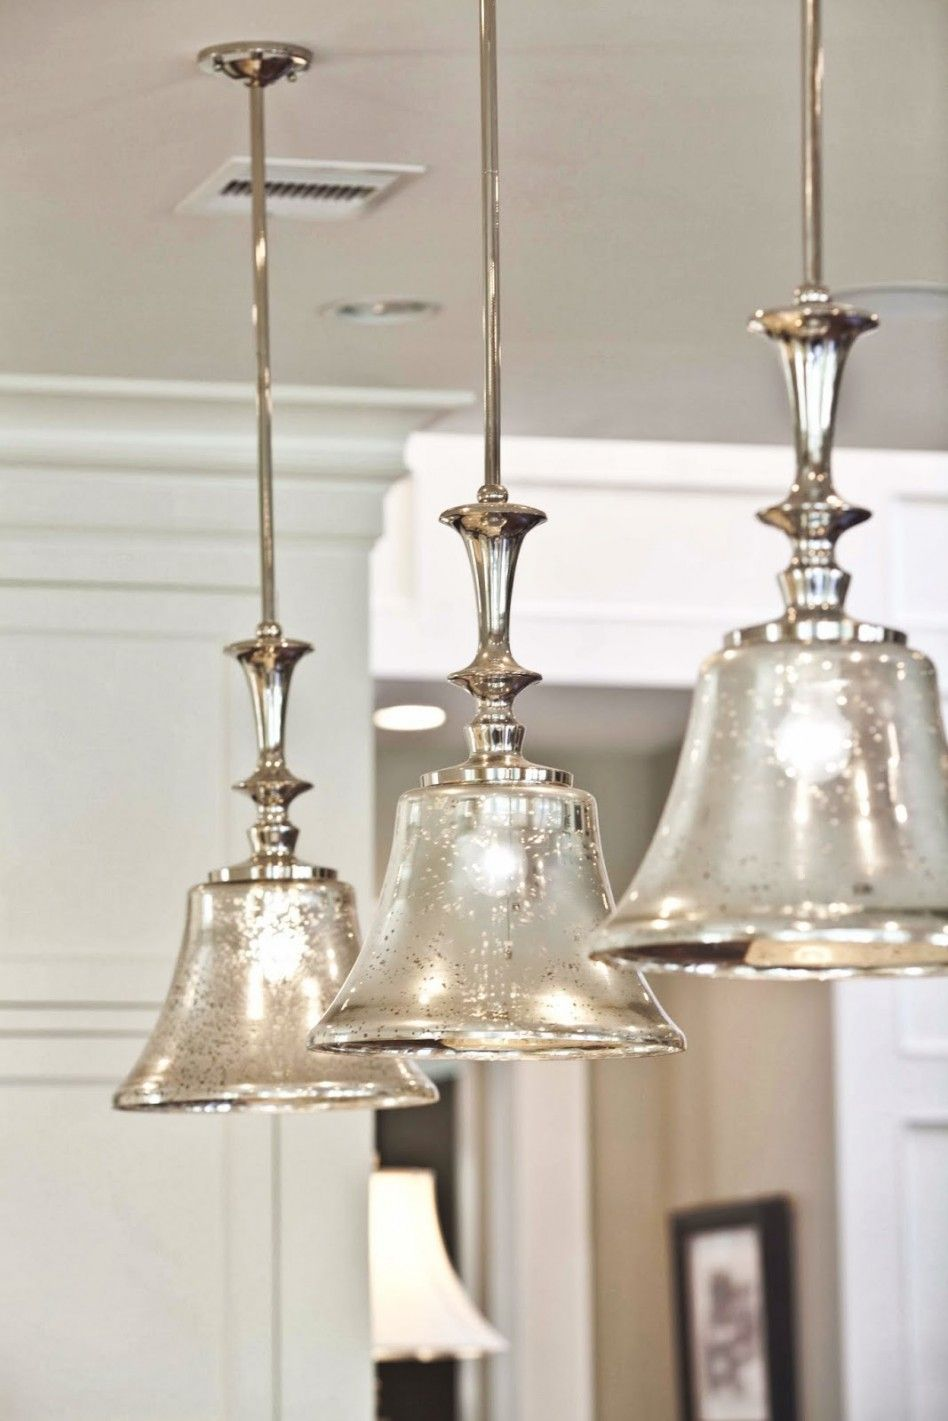 Clear Glass Pendant Lights For Kitchen Island Farmhouse Unique Decorative Lighting Google Search Cool Log